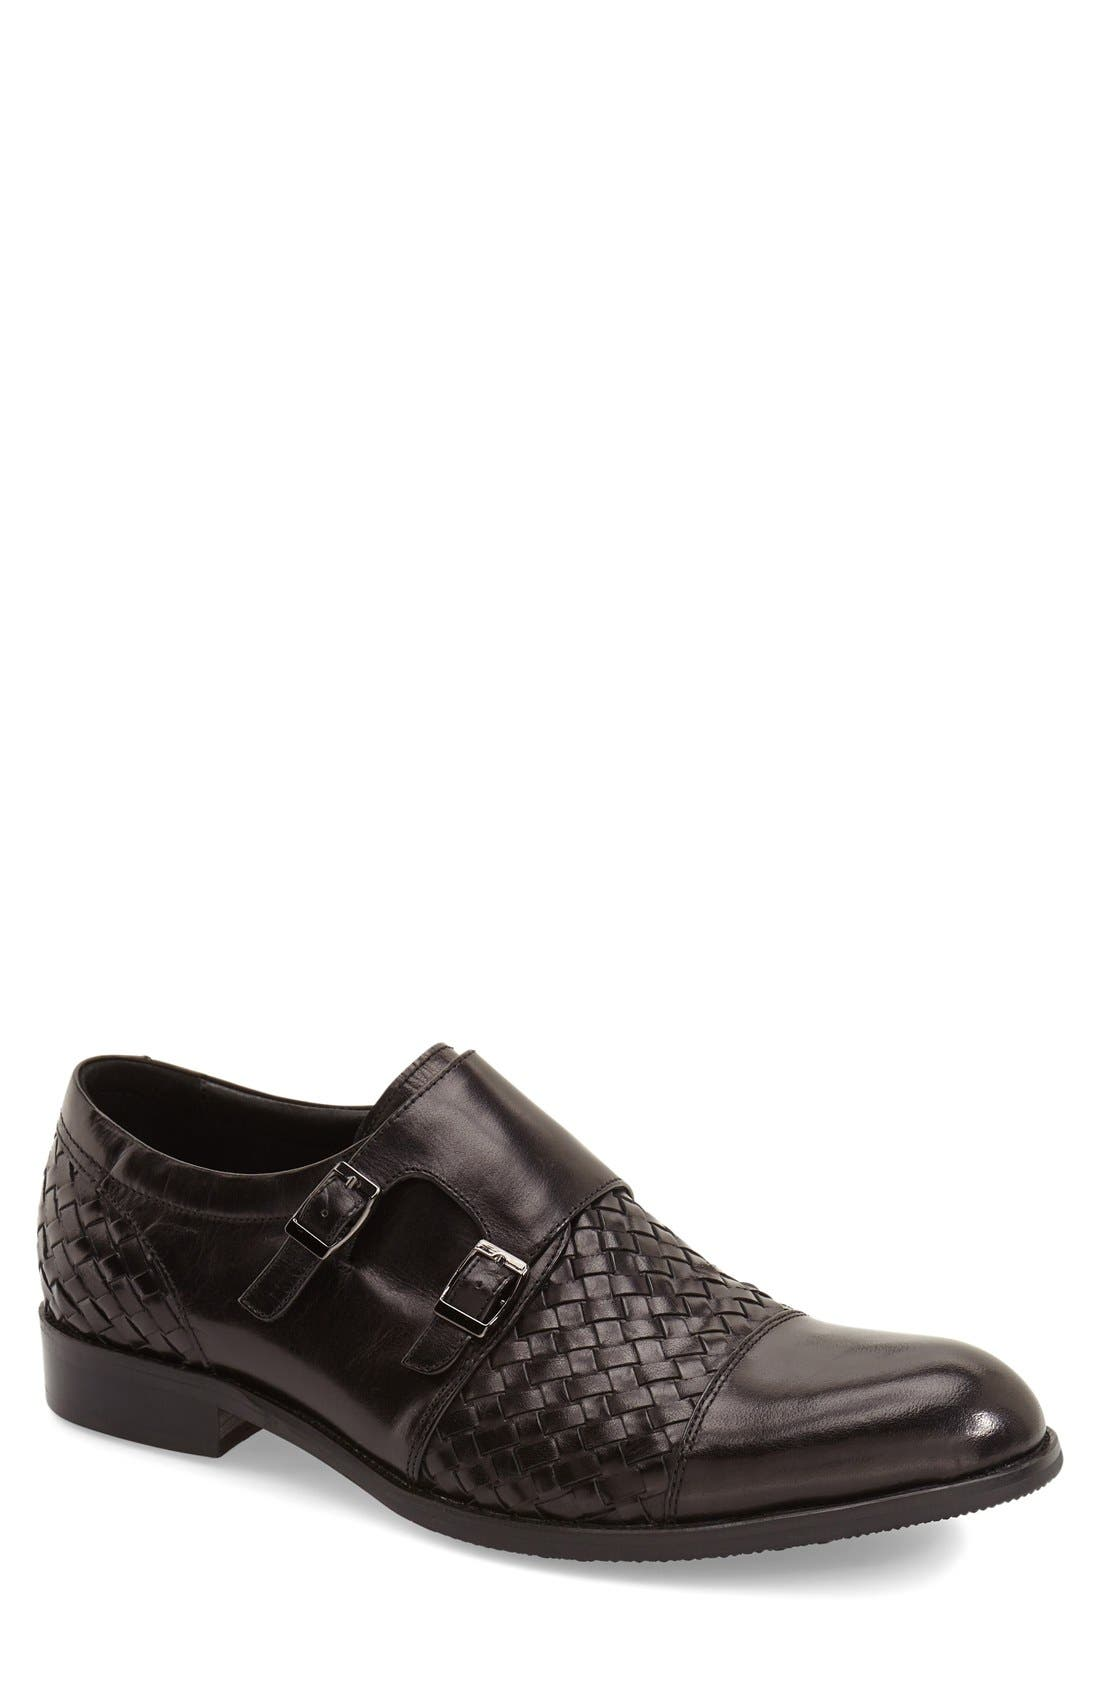 'Mahler' Monk Strap Shoe,                         Main,                         color, 001